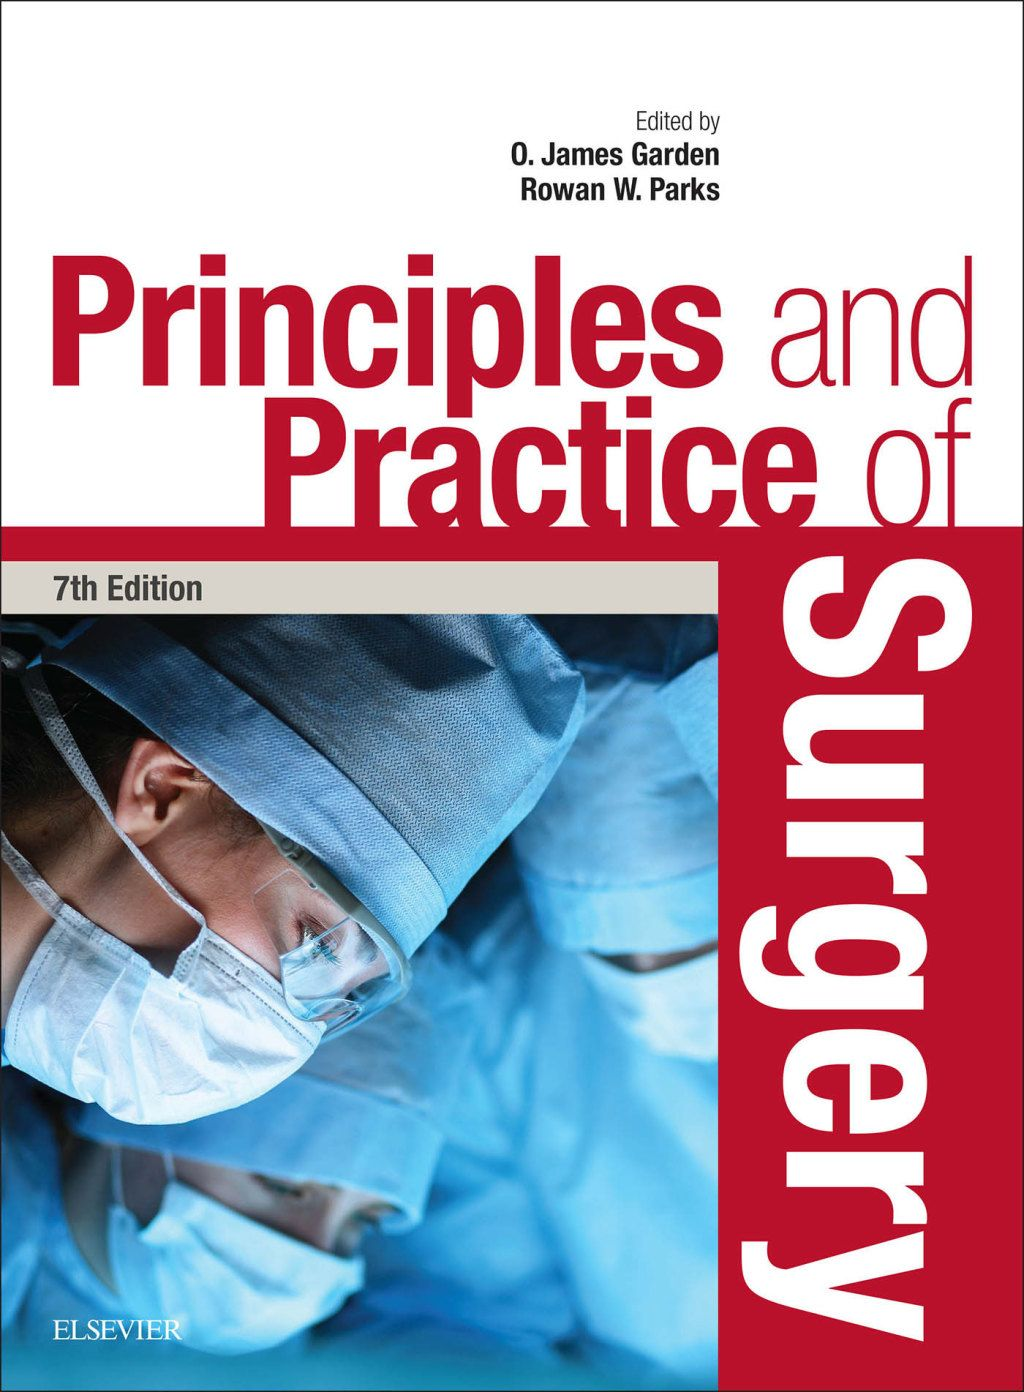 Principles And Practice Of Surgery E Book Ebook Medical Textbooks Anatomy And Physiology Book Medicine Book